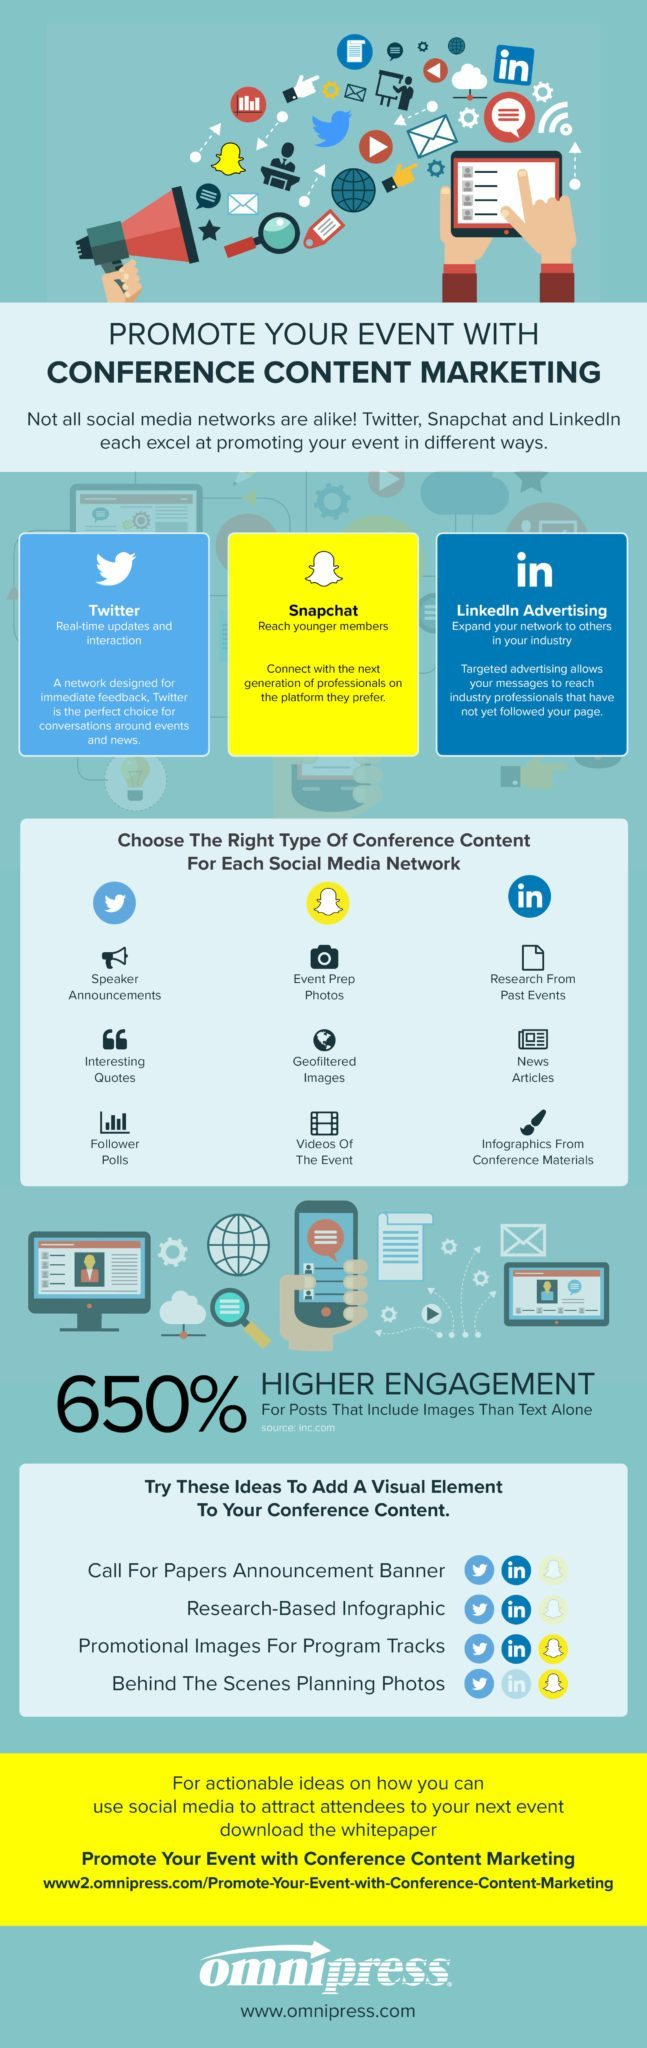 Infographic-Promote Your Event with Conference Content Marketing